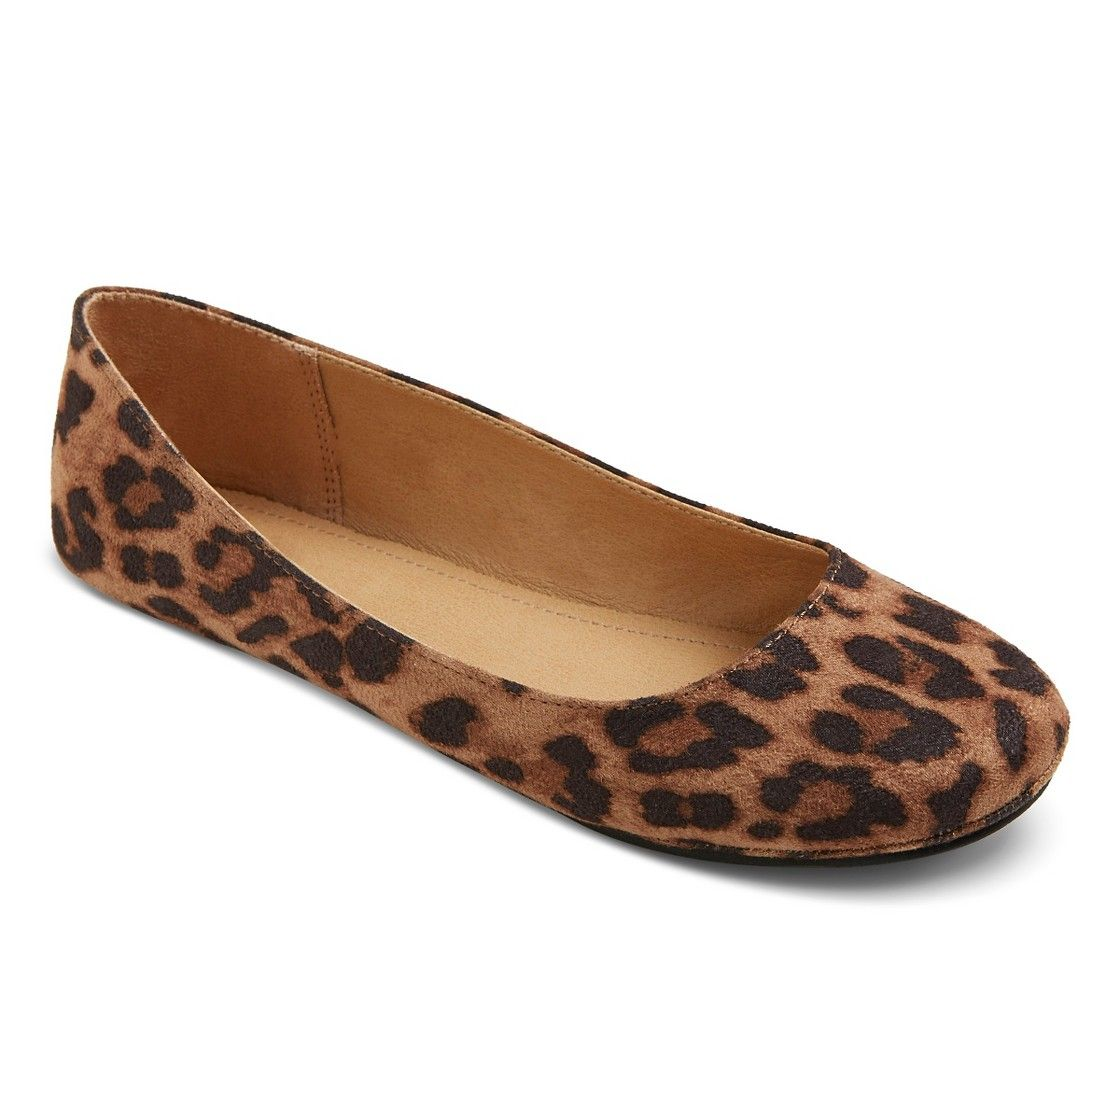 66fbb2b745d2 Women's Odell Ballet Flats @ Target Don't know why but I have a 'thing' for animal  print flats ♡ now just need the right size